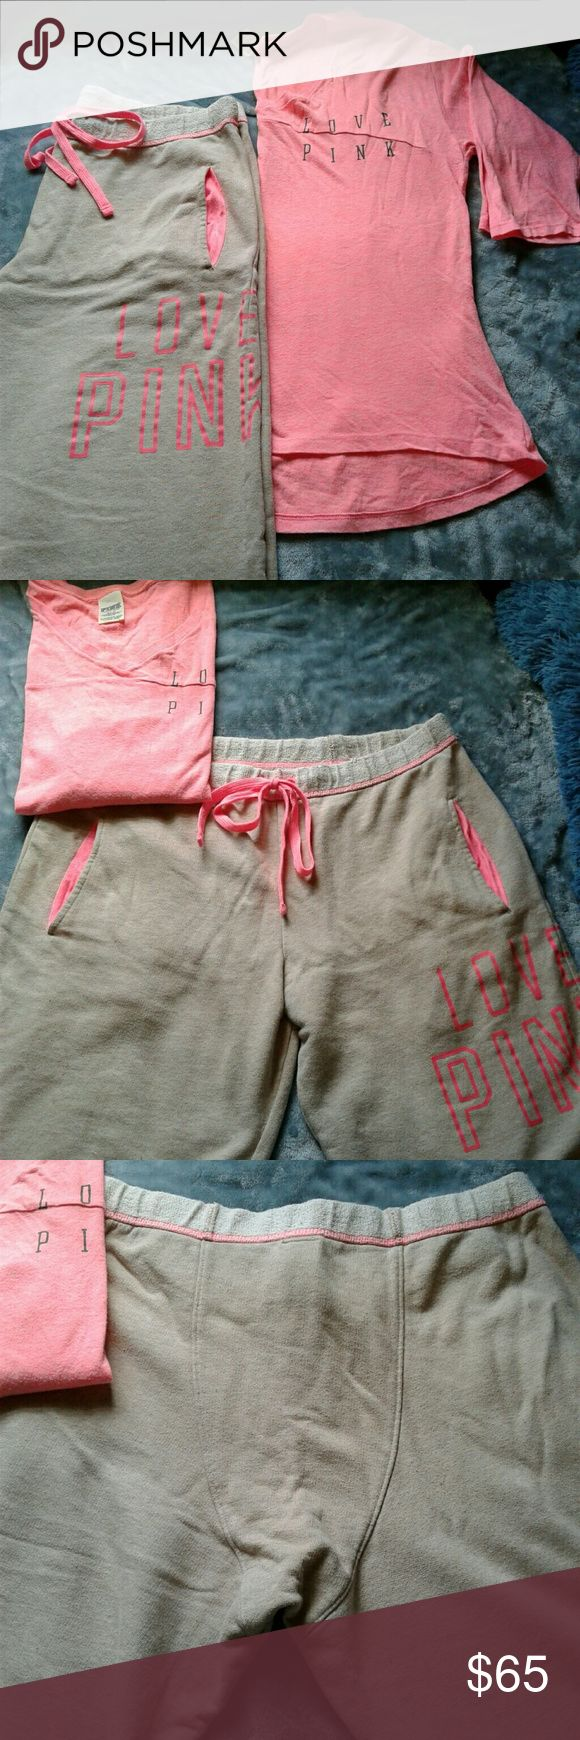 PINK VS tee shirt sweatpants set M Pre loved, good condition PINK Victoria's Secret pink and gray tee shirt and boyfriend style sweatpant set. Pink 3/4 sleeve, v neck, high low tee shirt with LOVE PINK logo on left breast size M. Gray drawstring waist boyfriend style sweatpants with pink LOVE PINK logo on sides of left leg. 2 hip pockets lined with pink. Cut off cuff. Size M. Thanks for looking!! PINK Pants Track Pants & Joggers